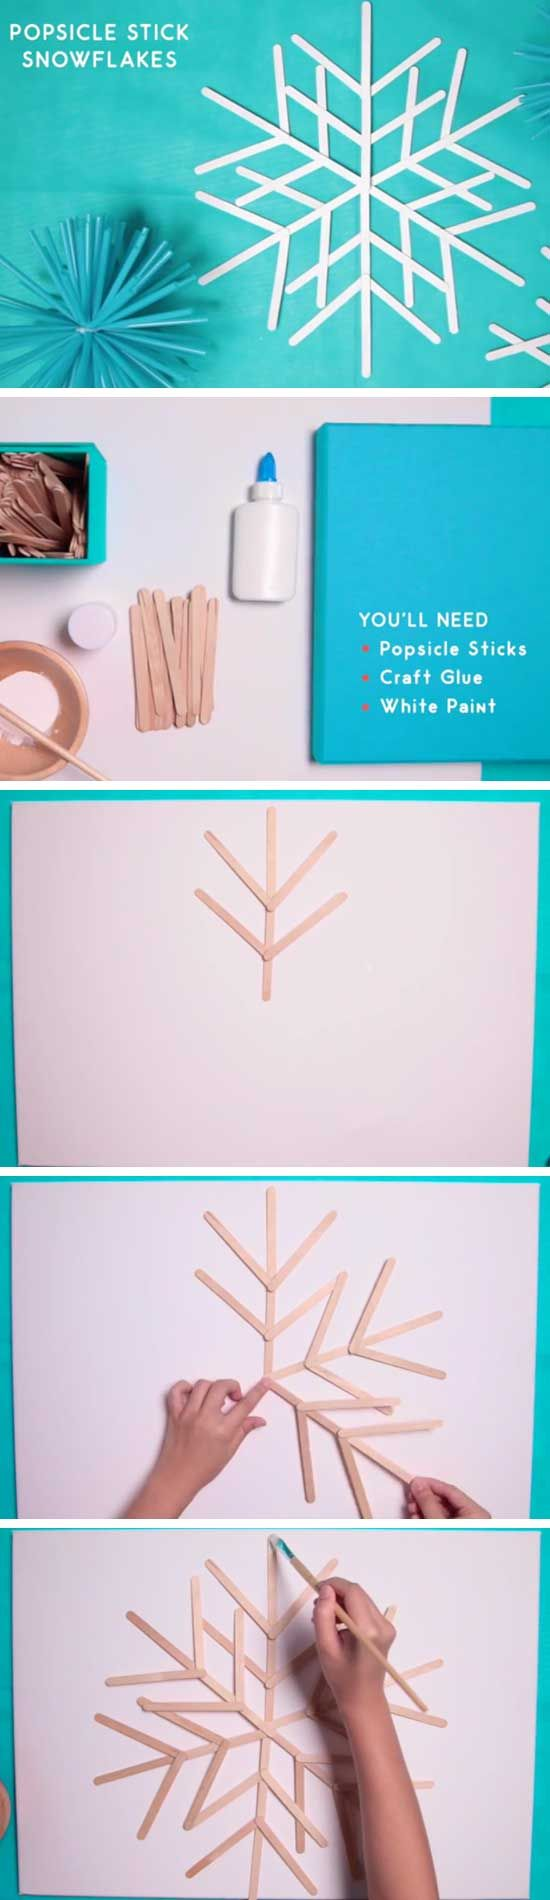 4. Popsicle Stick Snowflakes